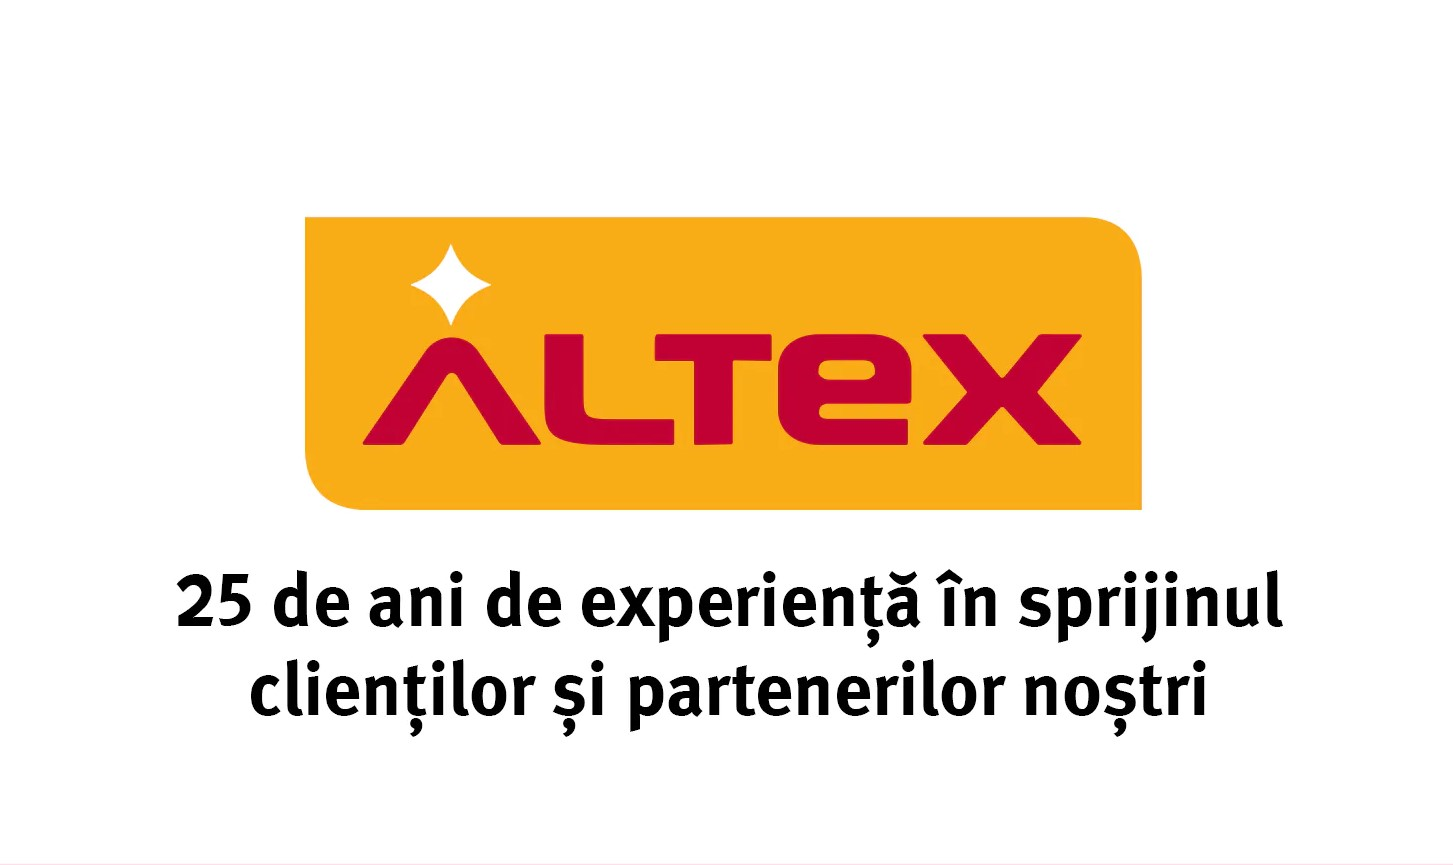 Altex image